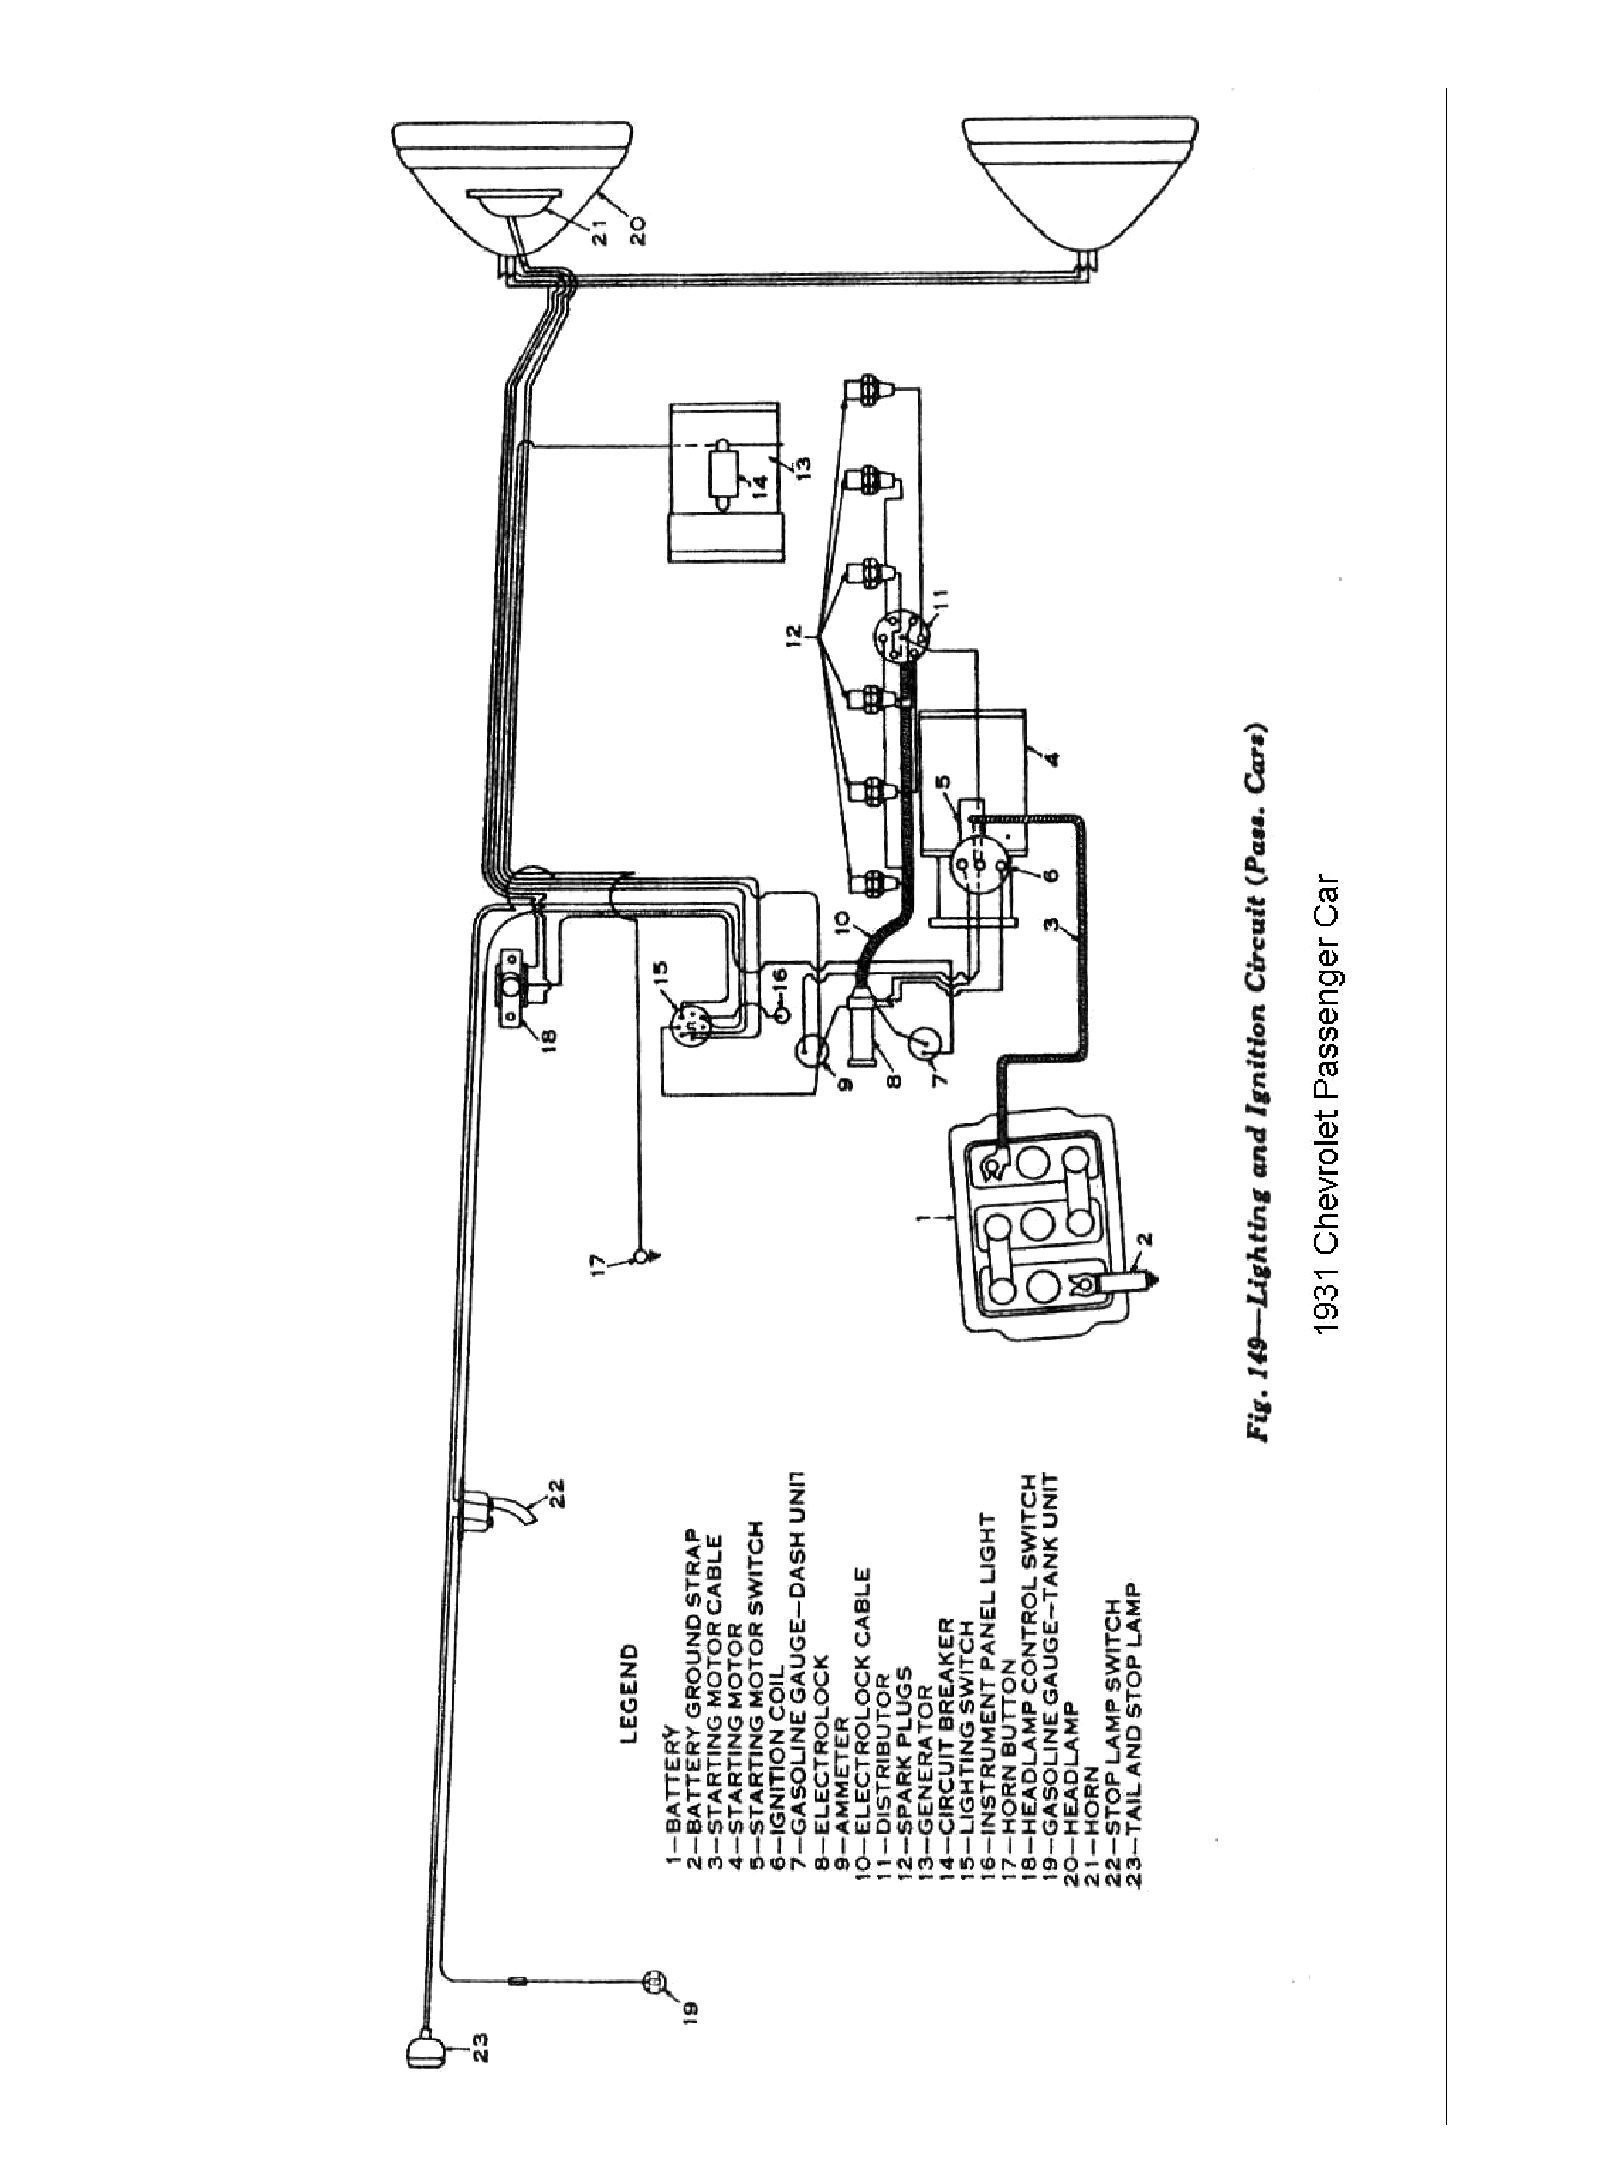 Wiring Diagram for Multiple Lights New Fresh Wiring Diagrams Recessed Lights